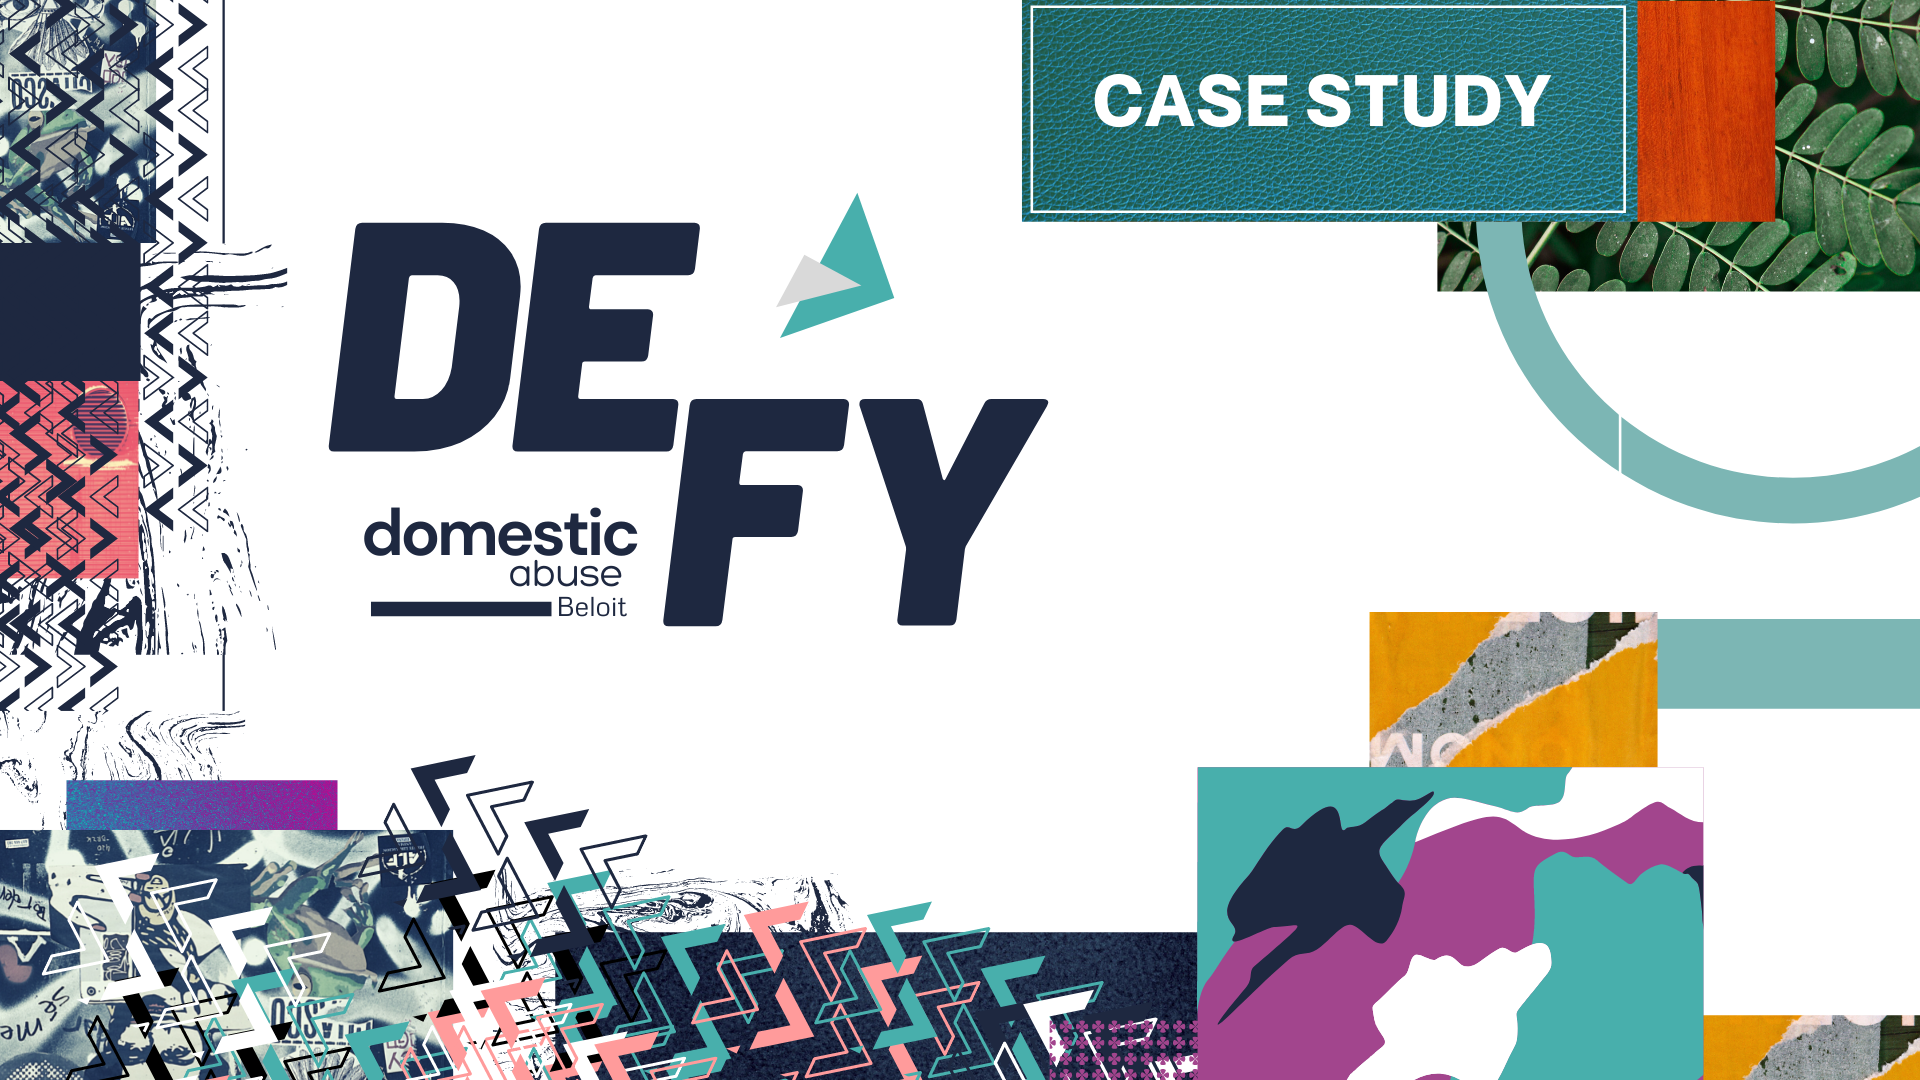 Title card for the Defy Domestic Abuse Case Study by Owl Street Studio